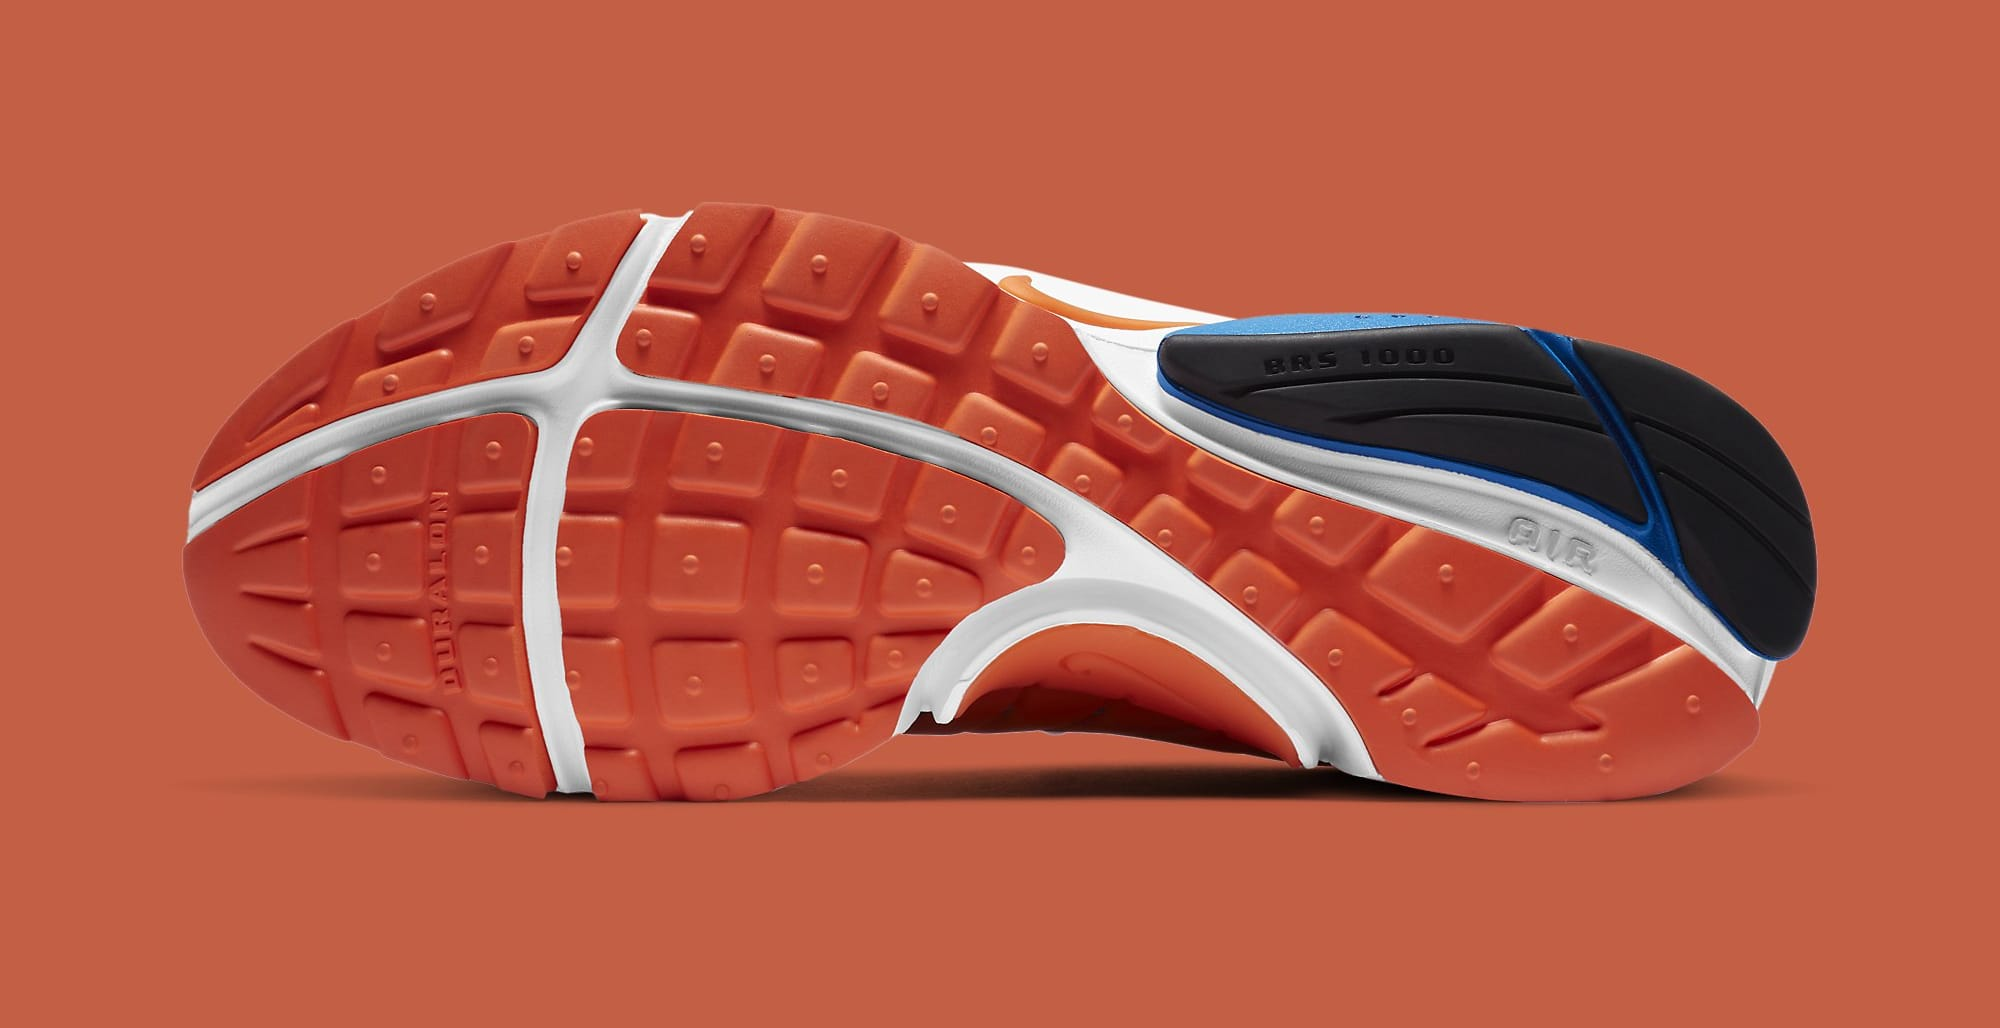 Nike Air Presto 'Soar' CJ1229-401 Outsole